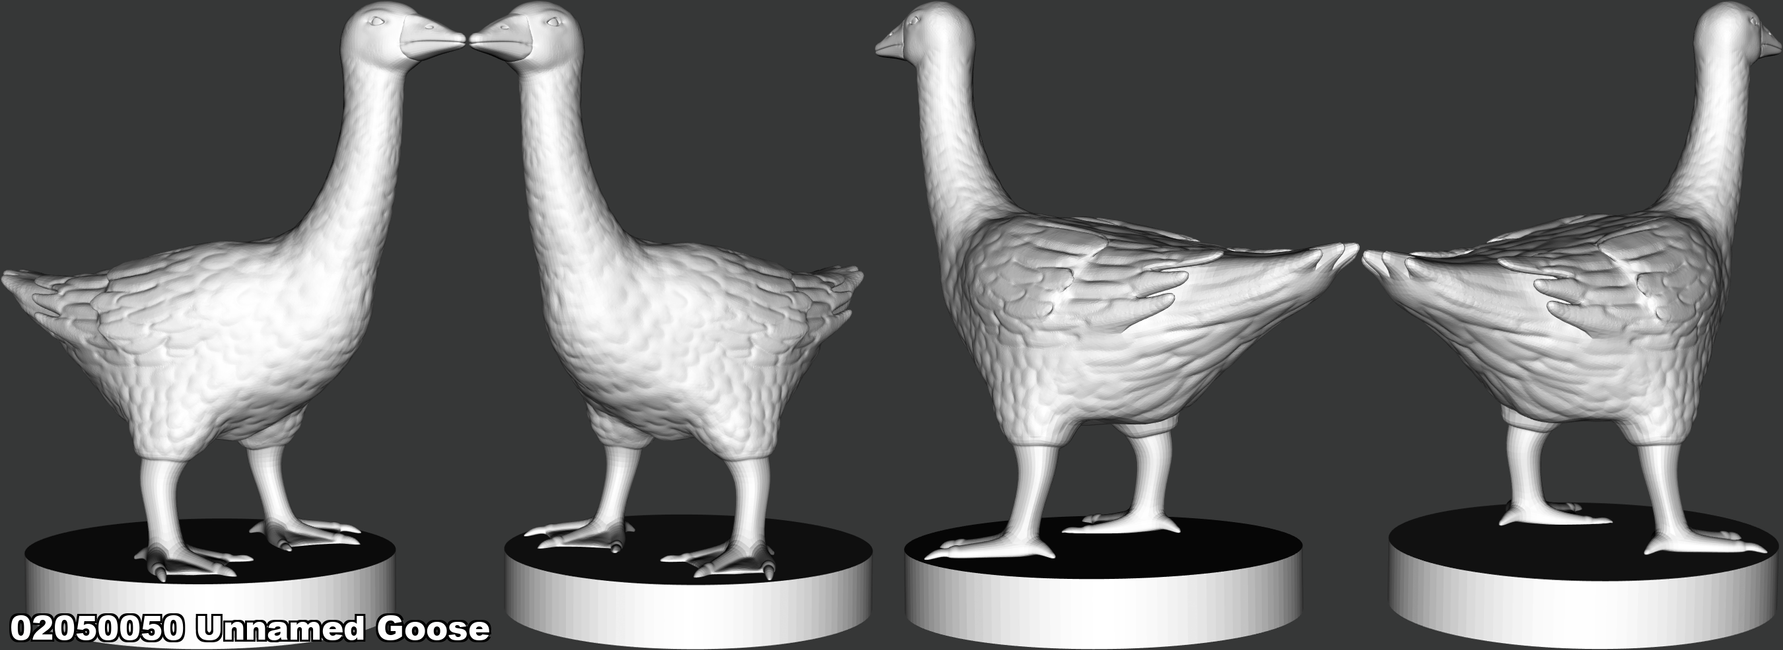 02050050 Unnamed Goose.png